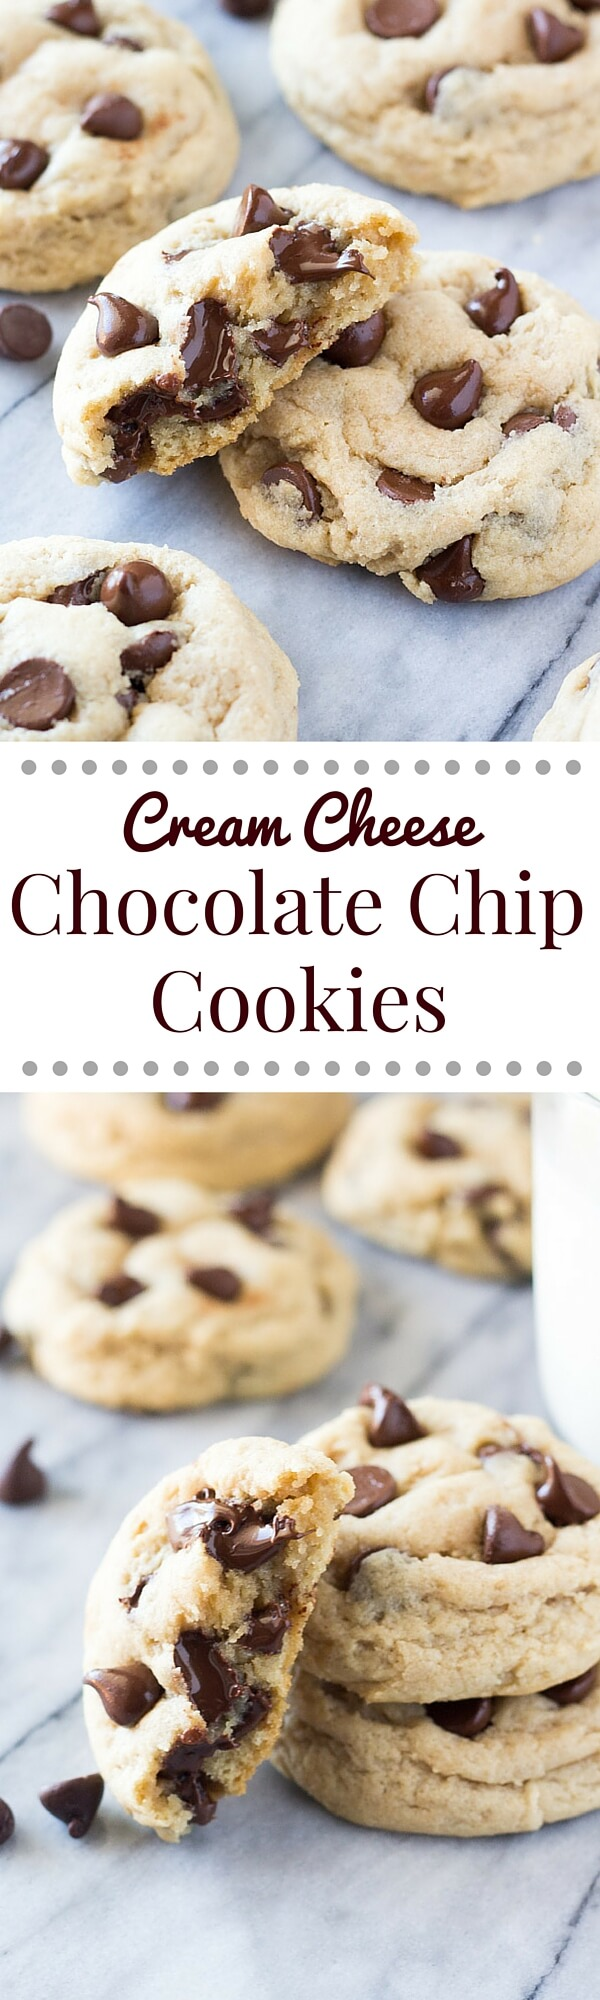 Cream Cheese Chocolate Chip Cookies - Just so Tasty